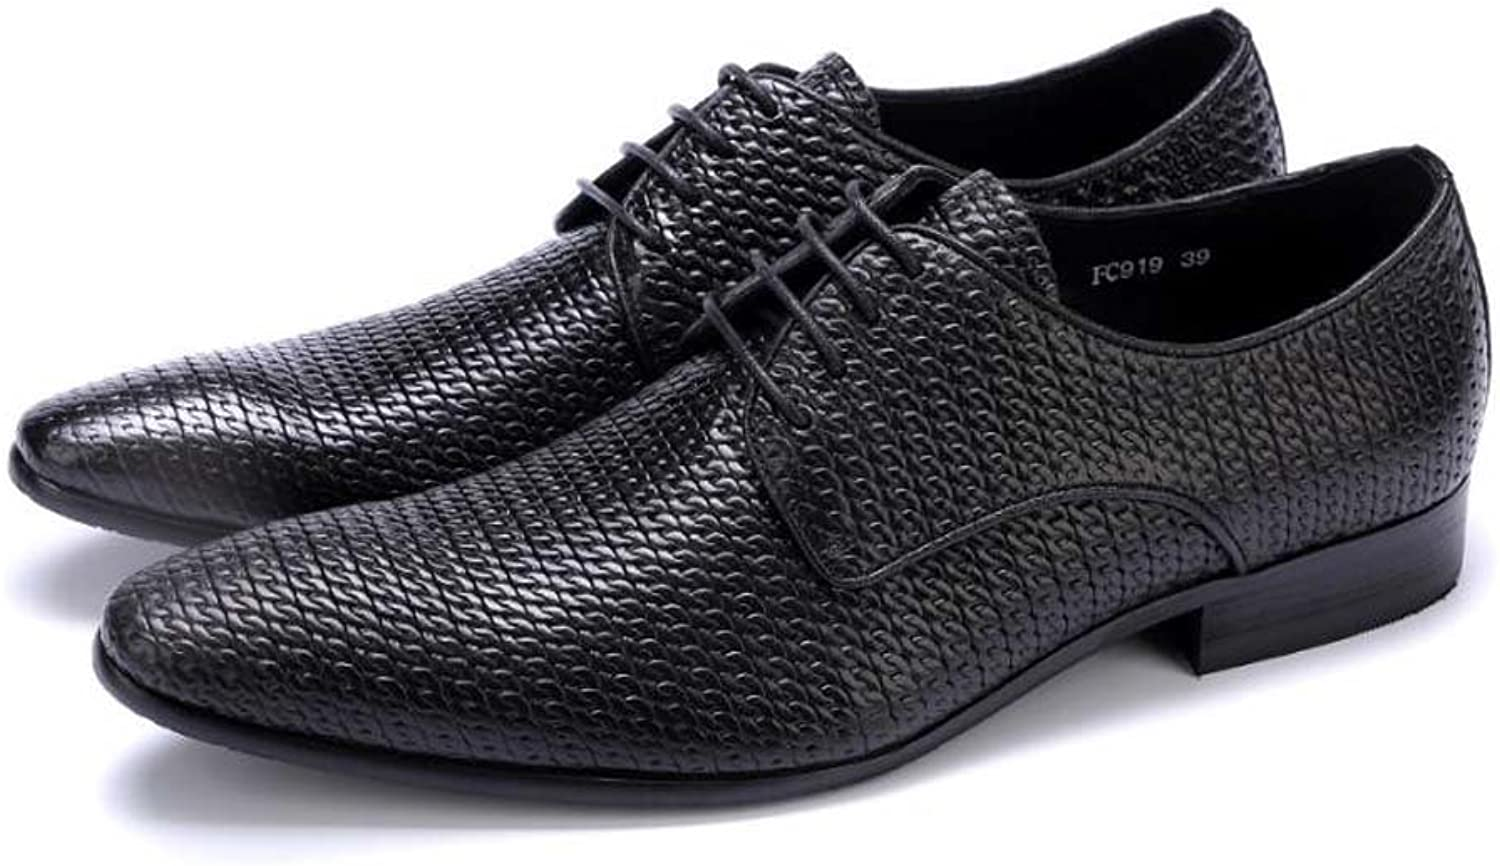 Men's Dress shoes Lace shoes Atmospheric Wedding shoes Fashion Atmosphere Have 37 Yards